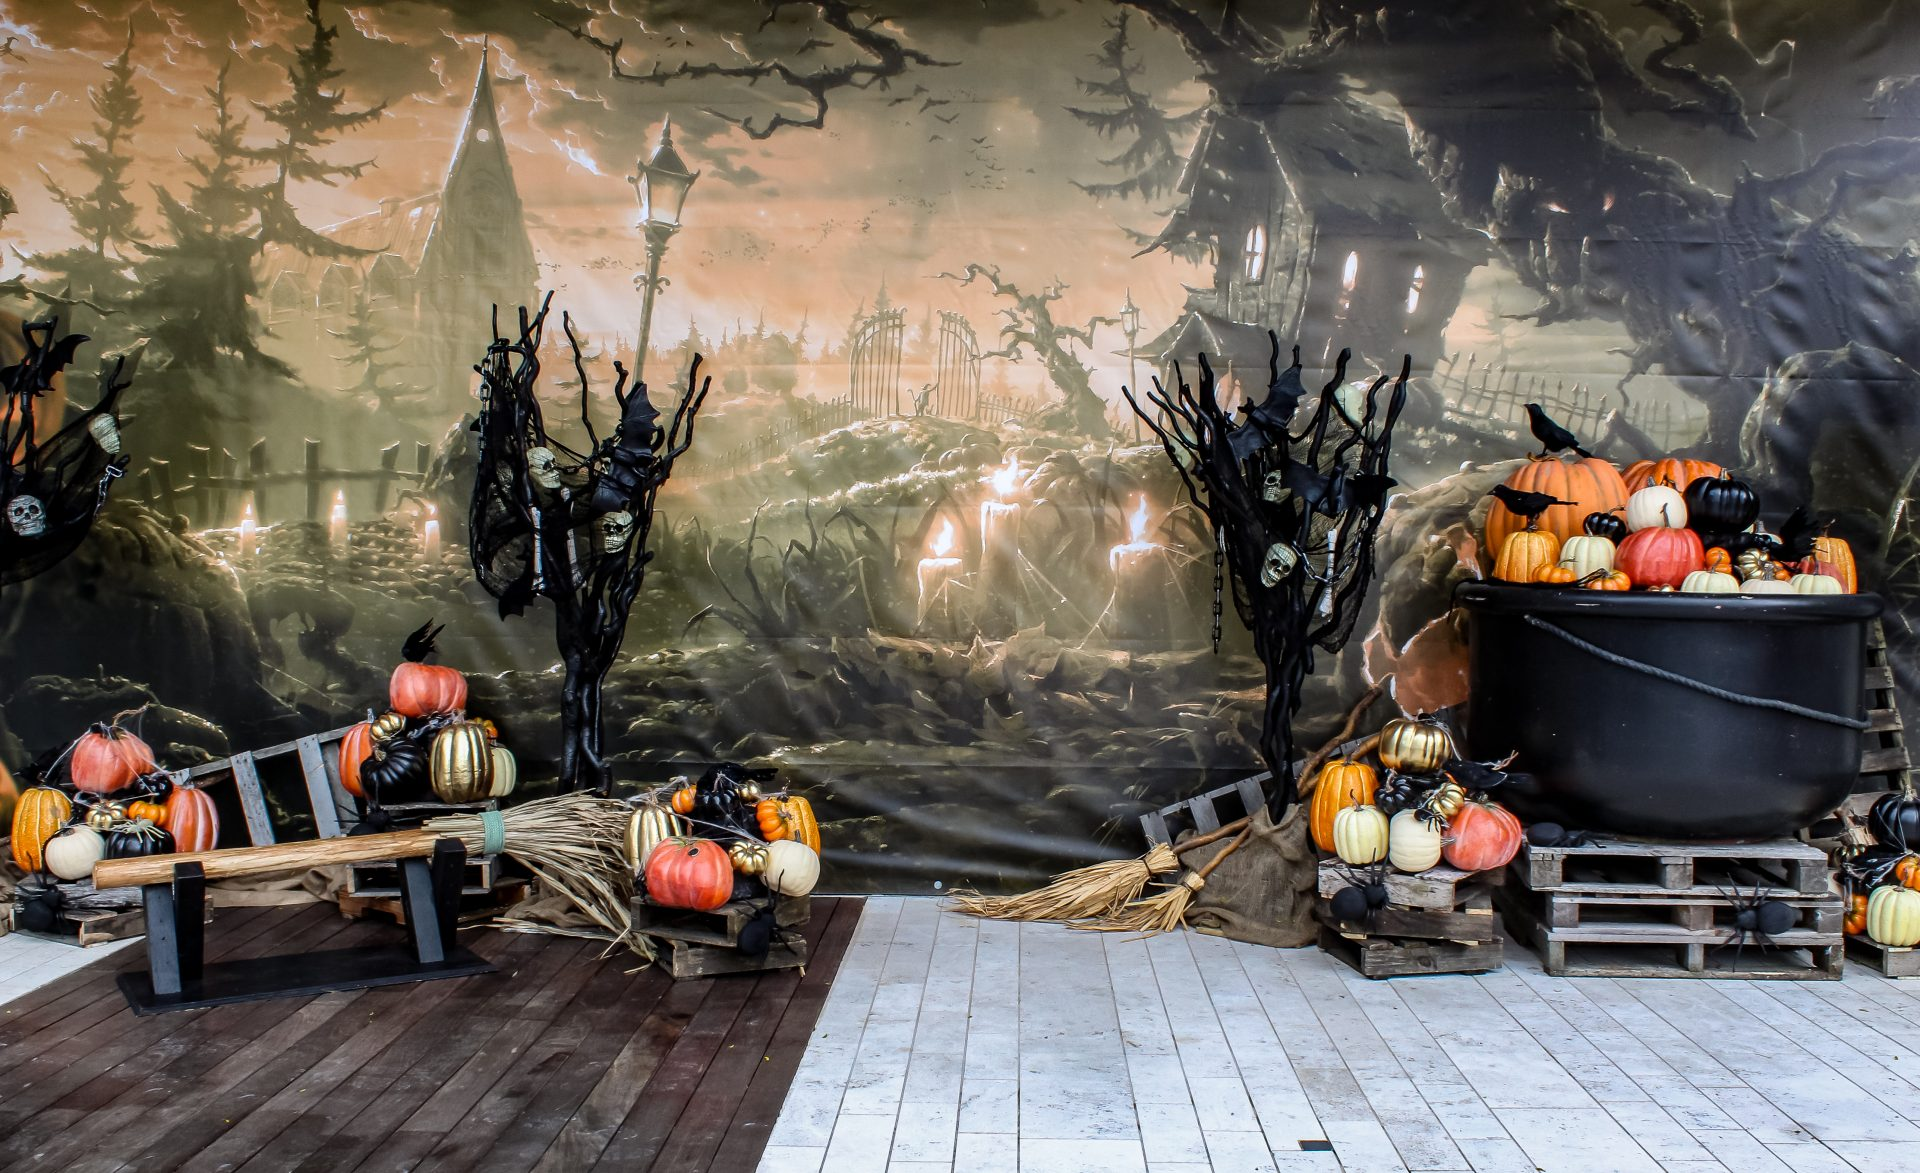 Large scale spooky backdrop with halloween props for a photo op